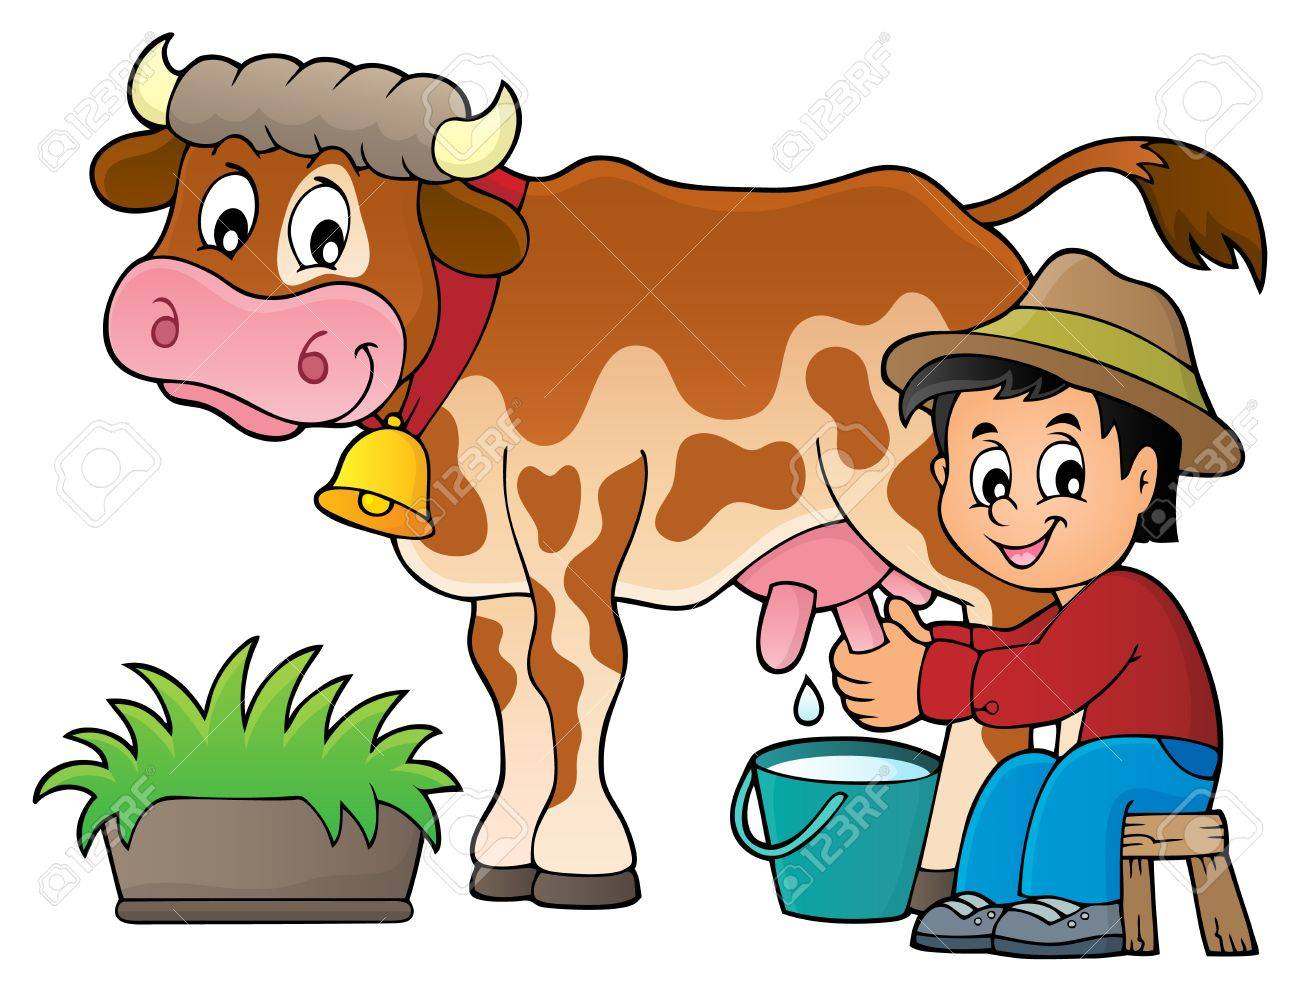 farmer milking cow image 1 eps10 vector illustration royalty free rh 123rf com dairy cattle clipart dairy cattle clipart